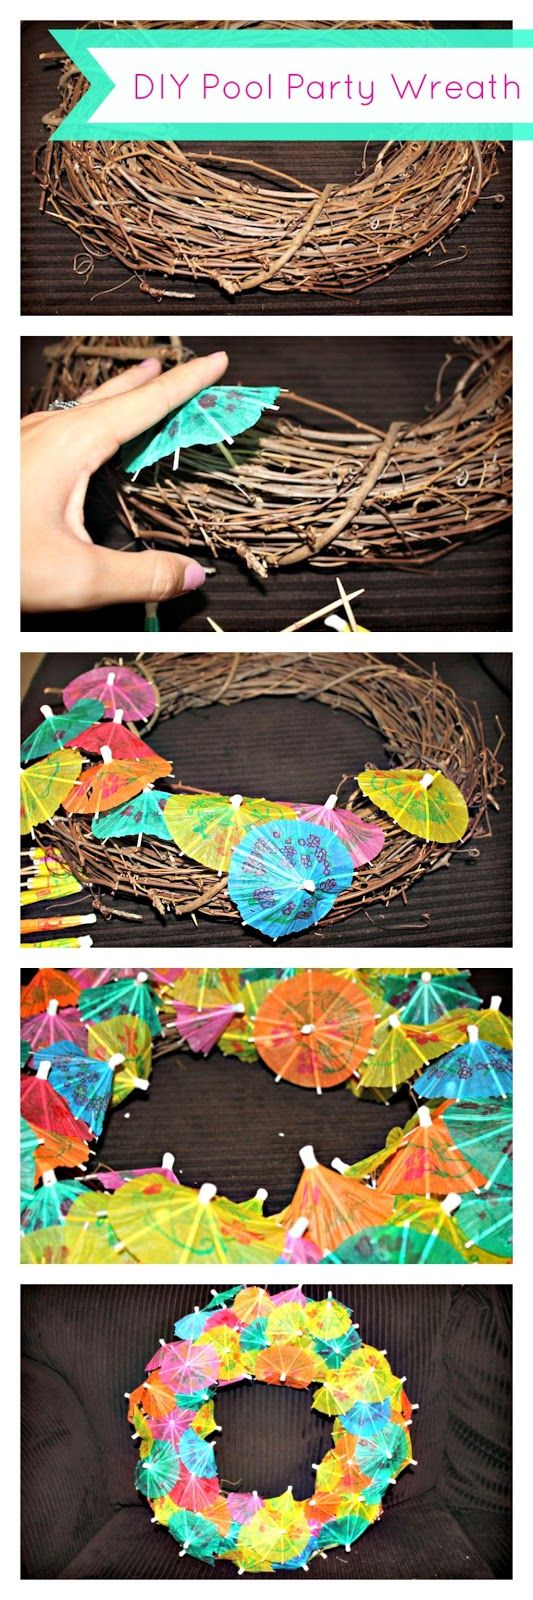 DIY Luau Party Ideas Part 1